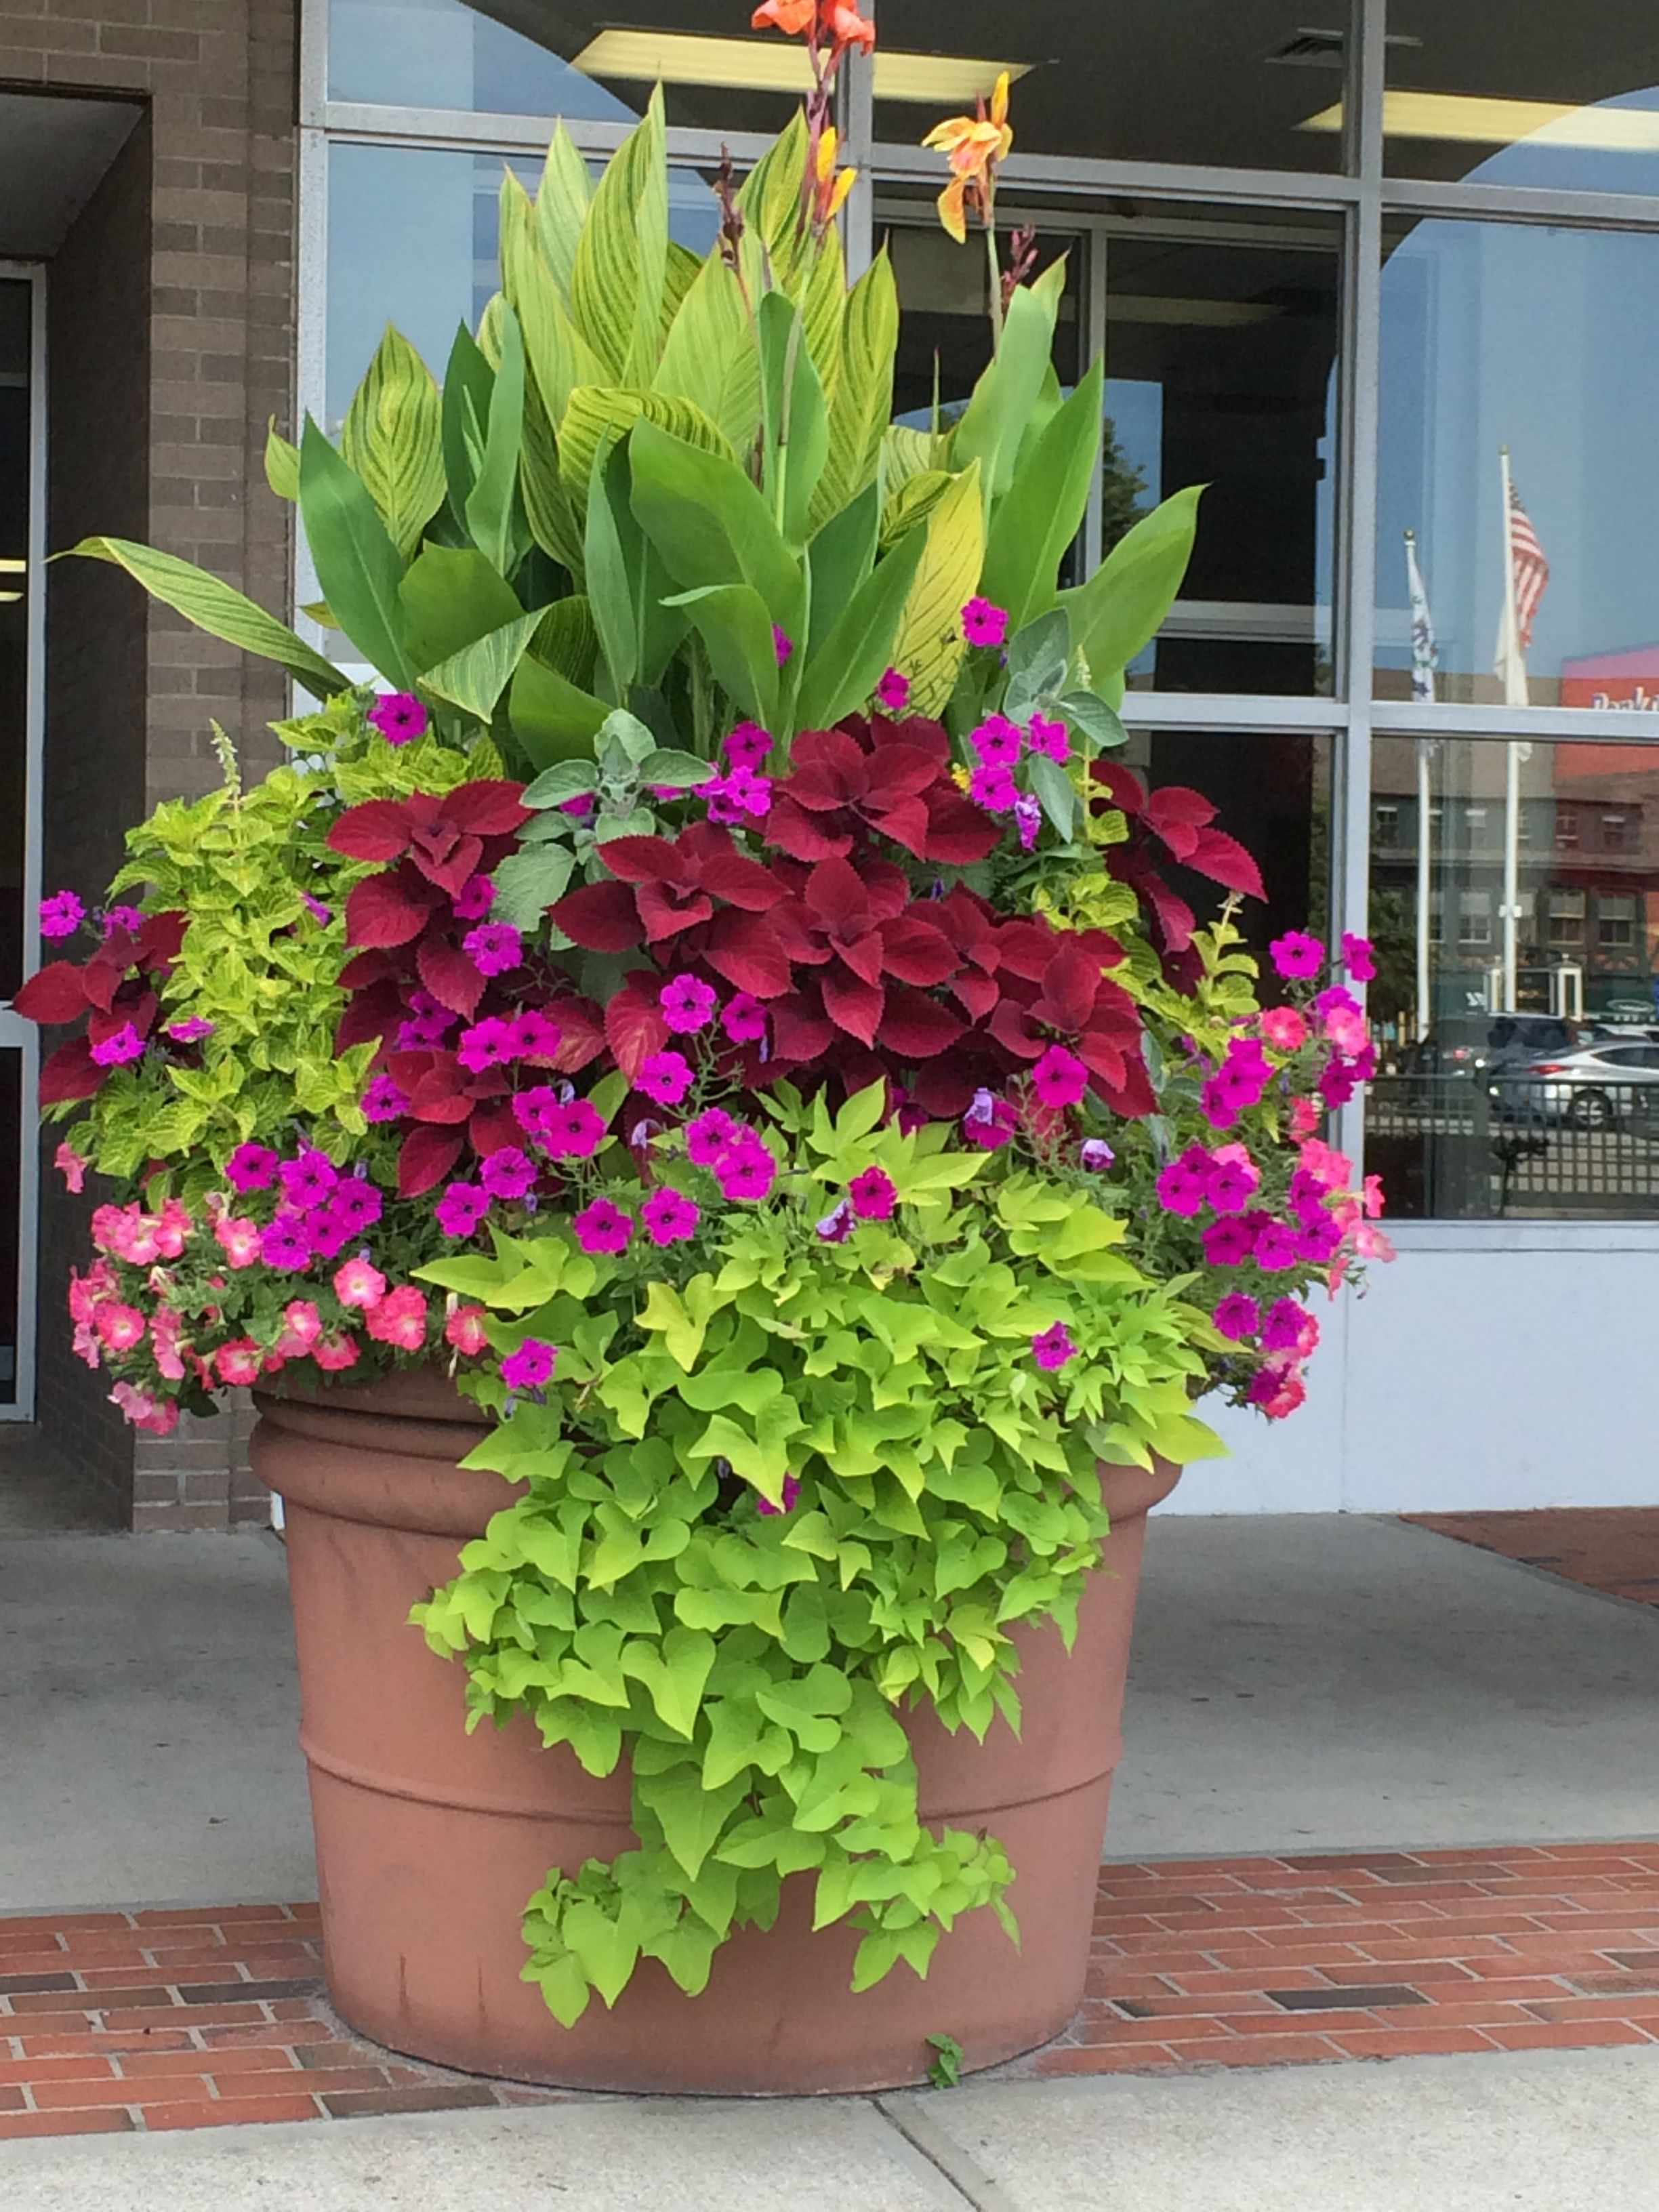 This Is A Really Big Pot But This Could Be Done On A Smaller Scale To Enjoy Tropicals In A Coole Flower Pots Outdoor Container Gardening Flowers Porch Flowers